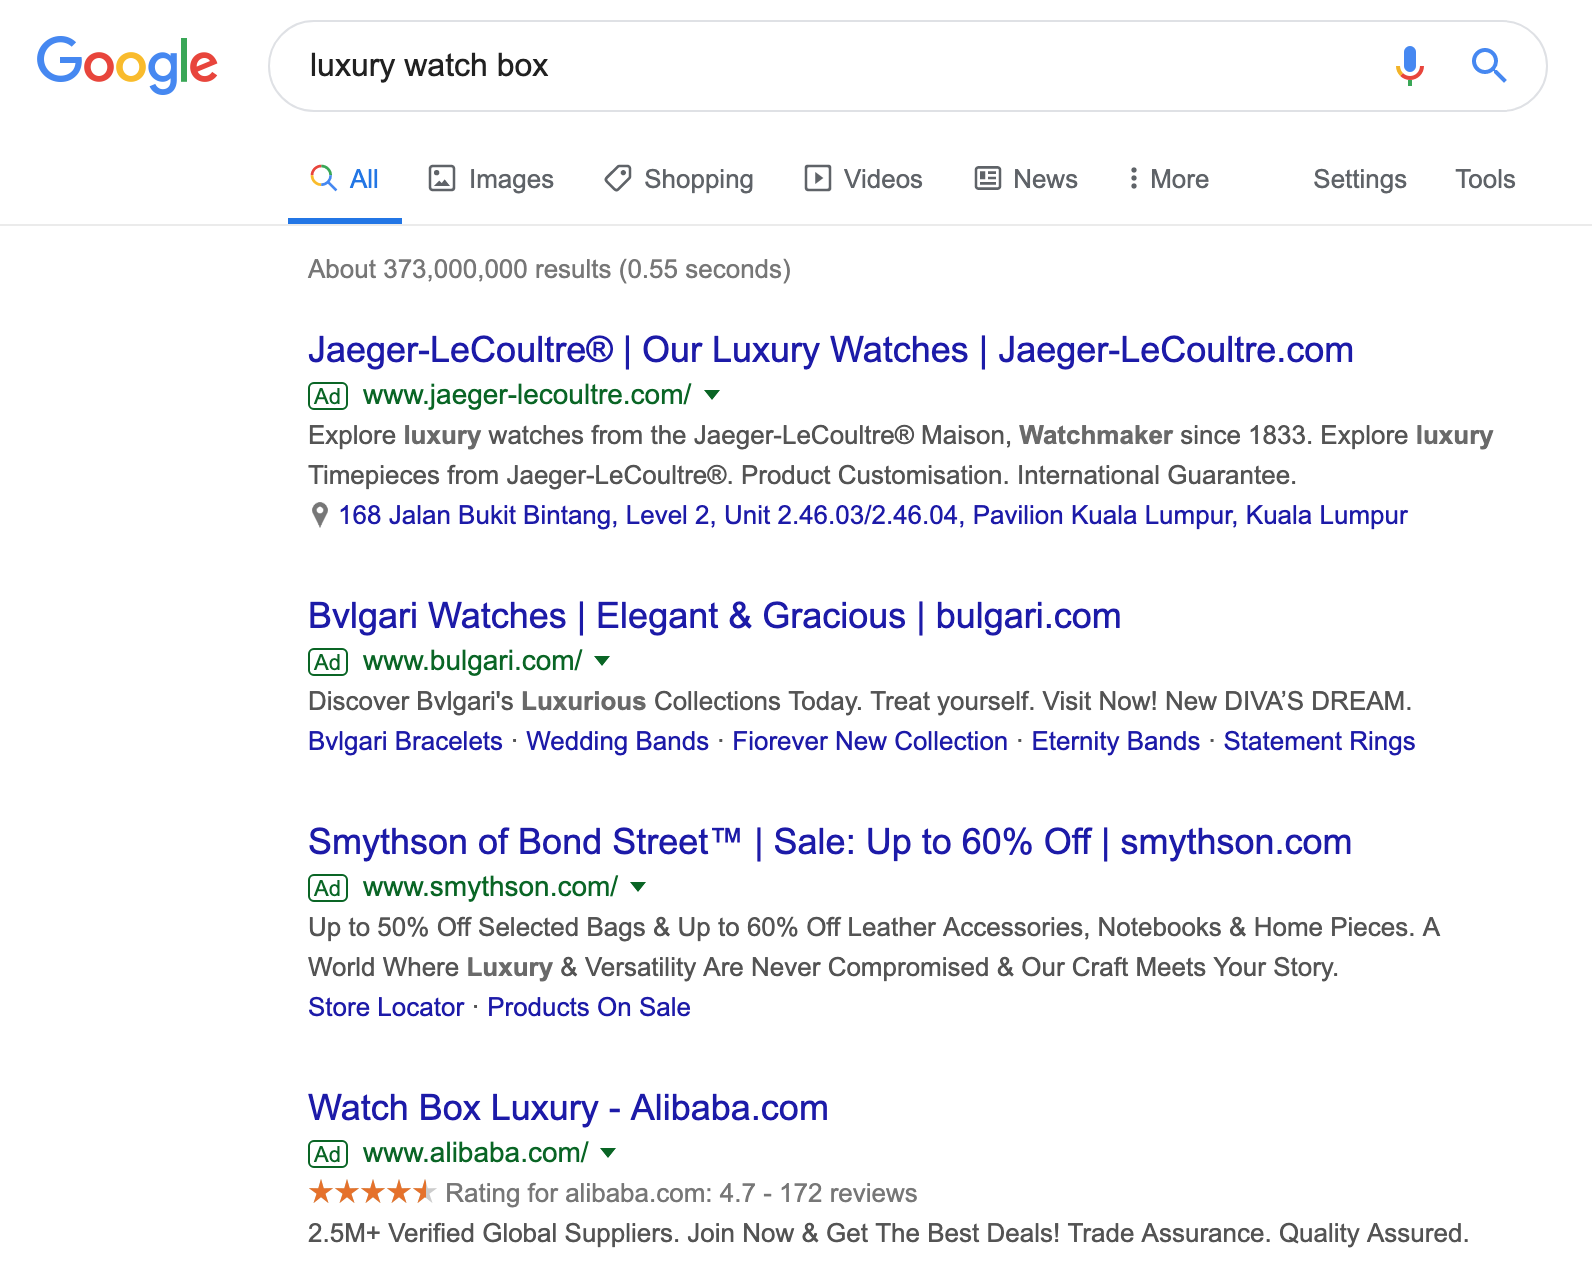 Example of 'luxury watch box' Google search